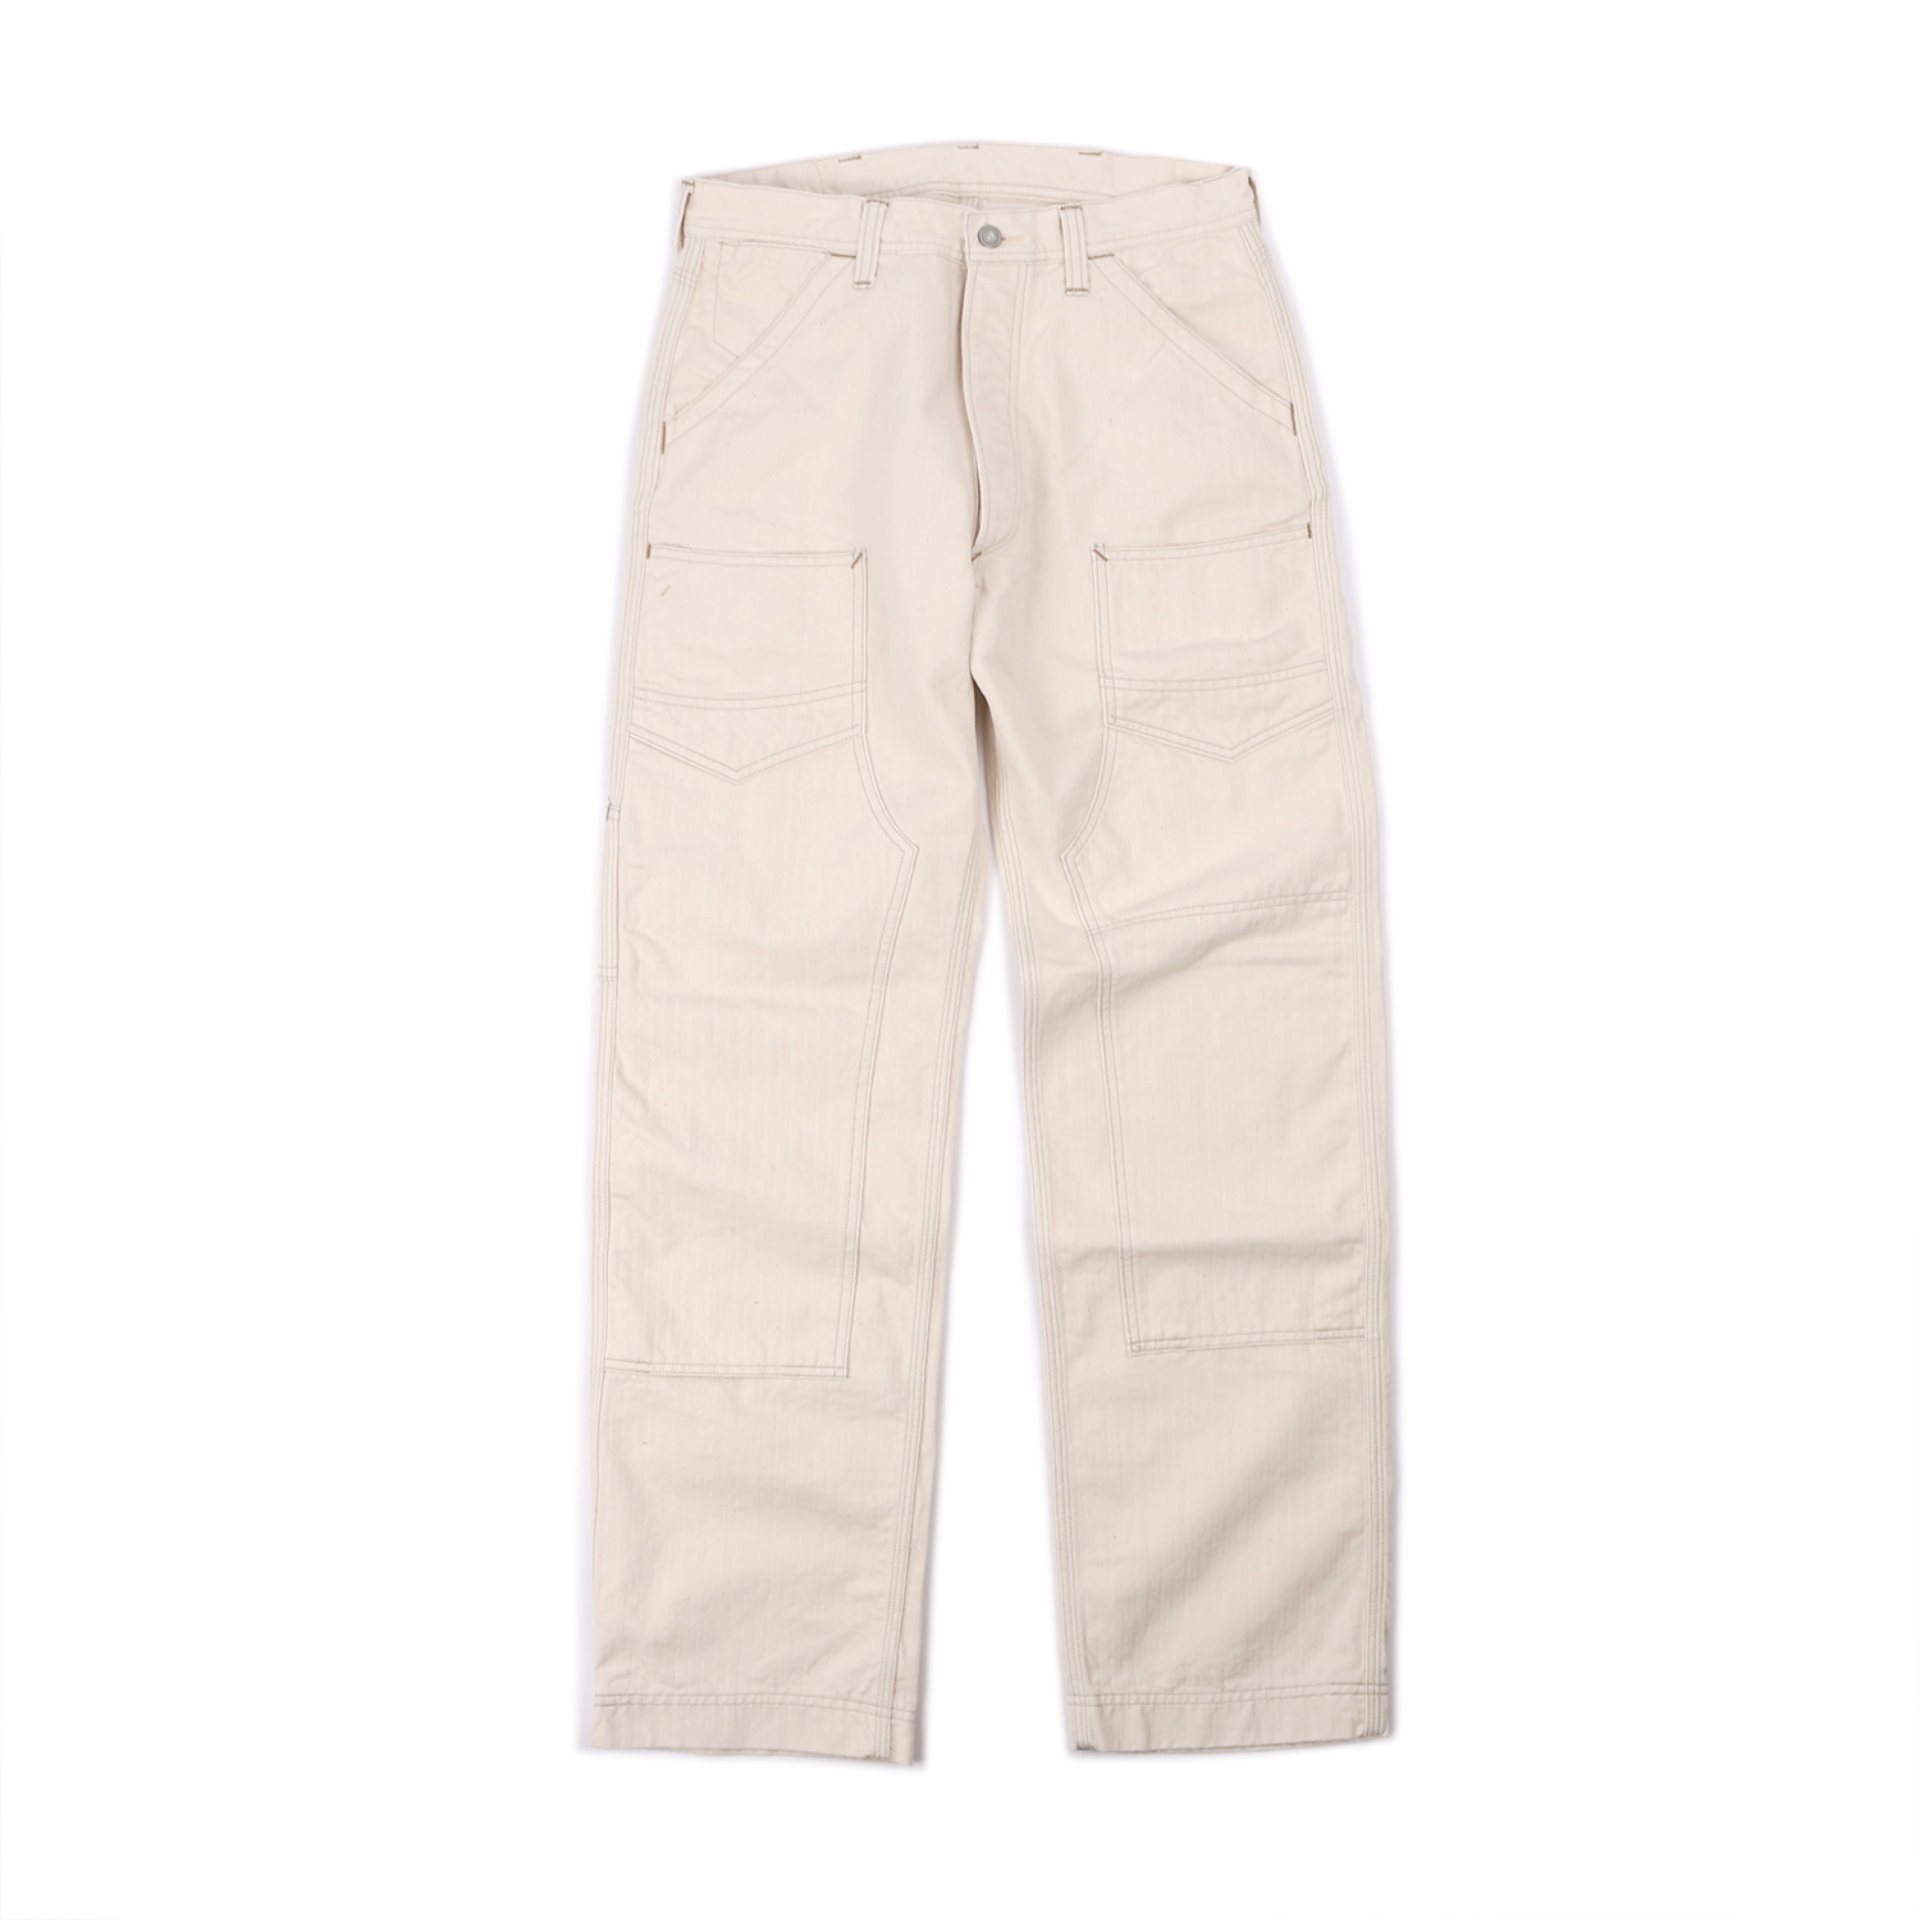 "[Union Special Overalls]WORK PANTS""DERRICK MAN""(Raw White)"